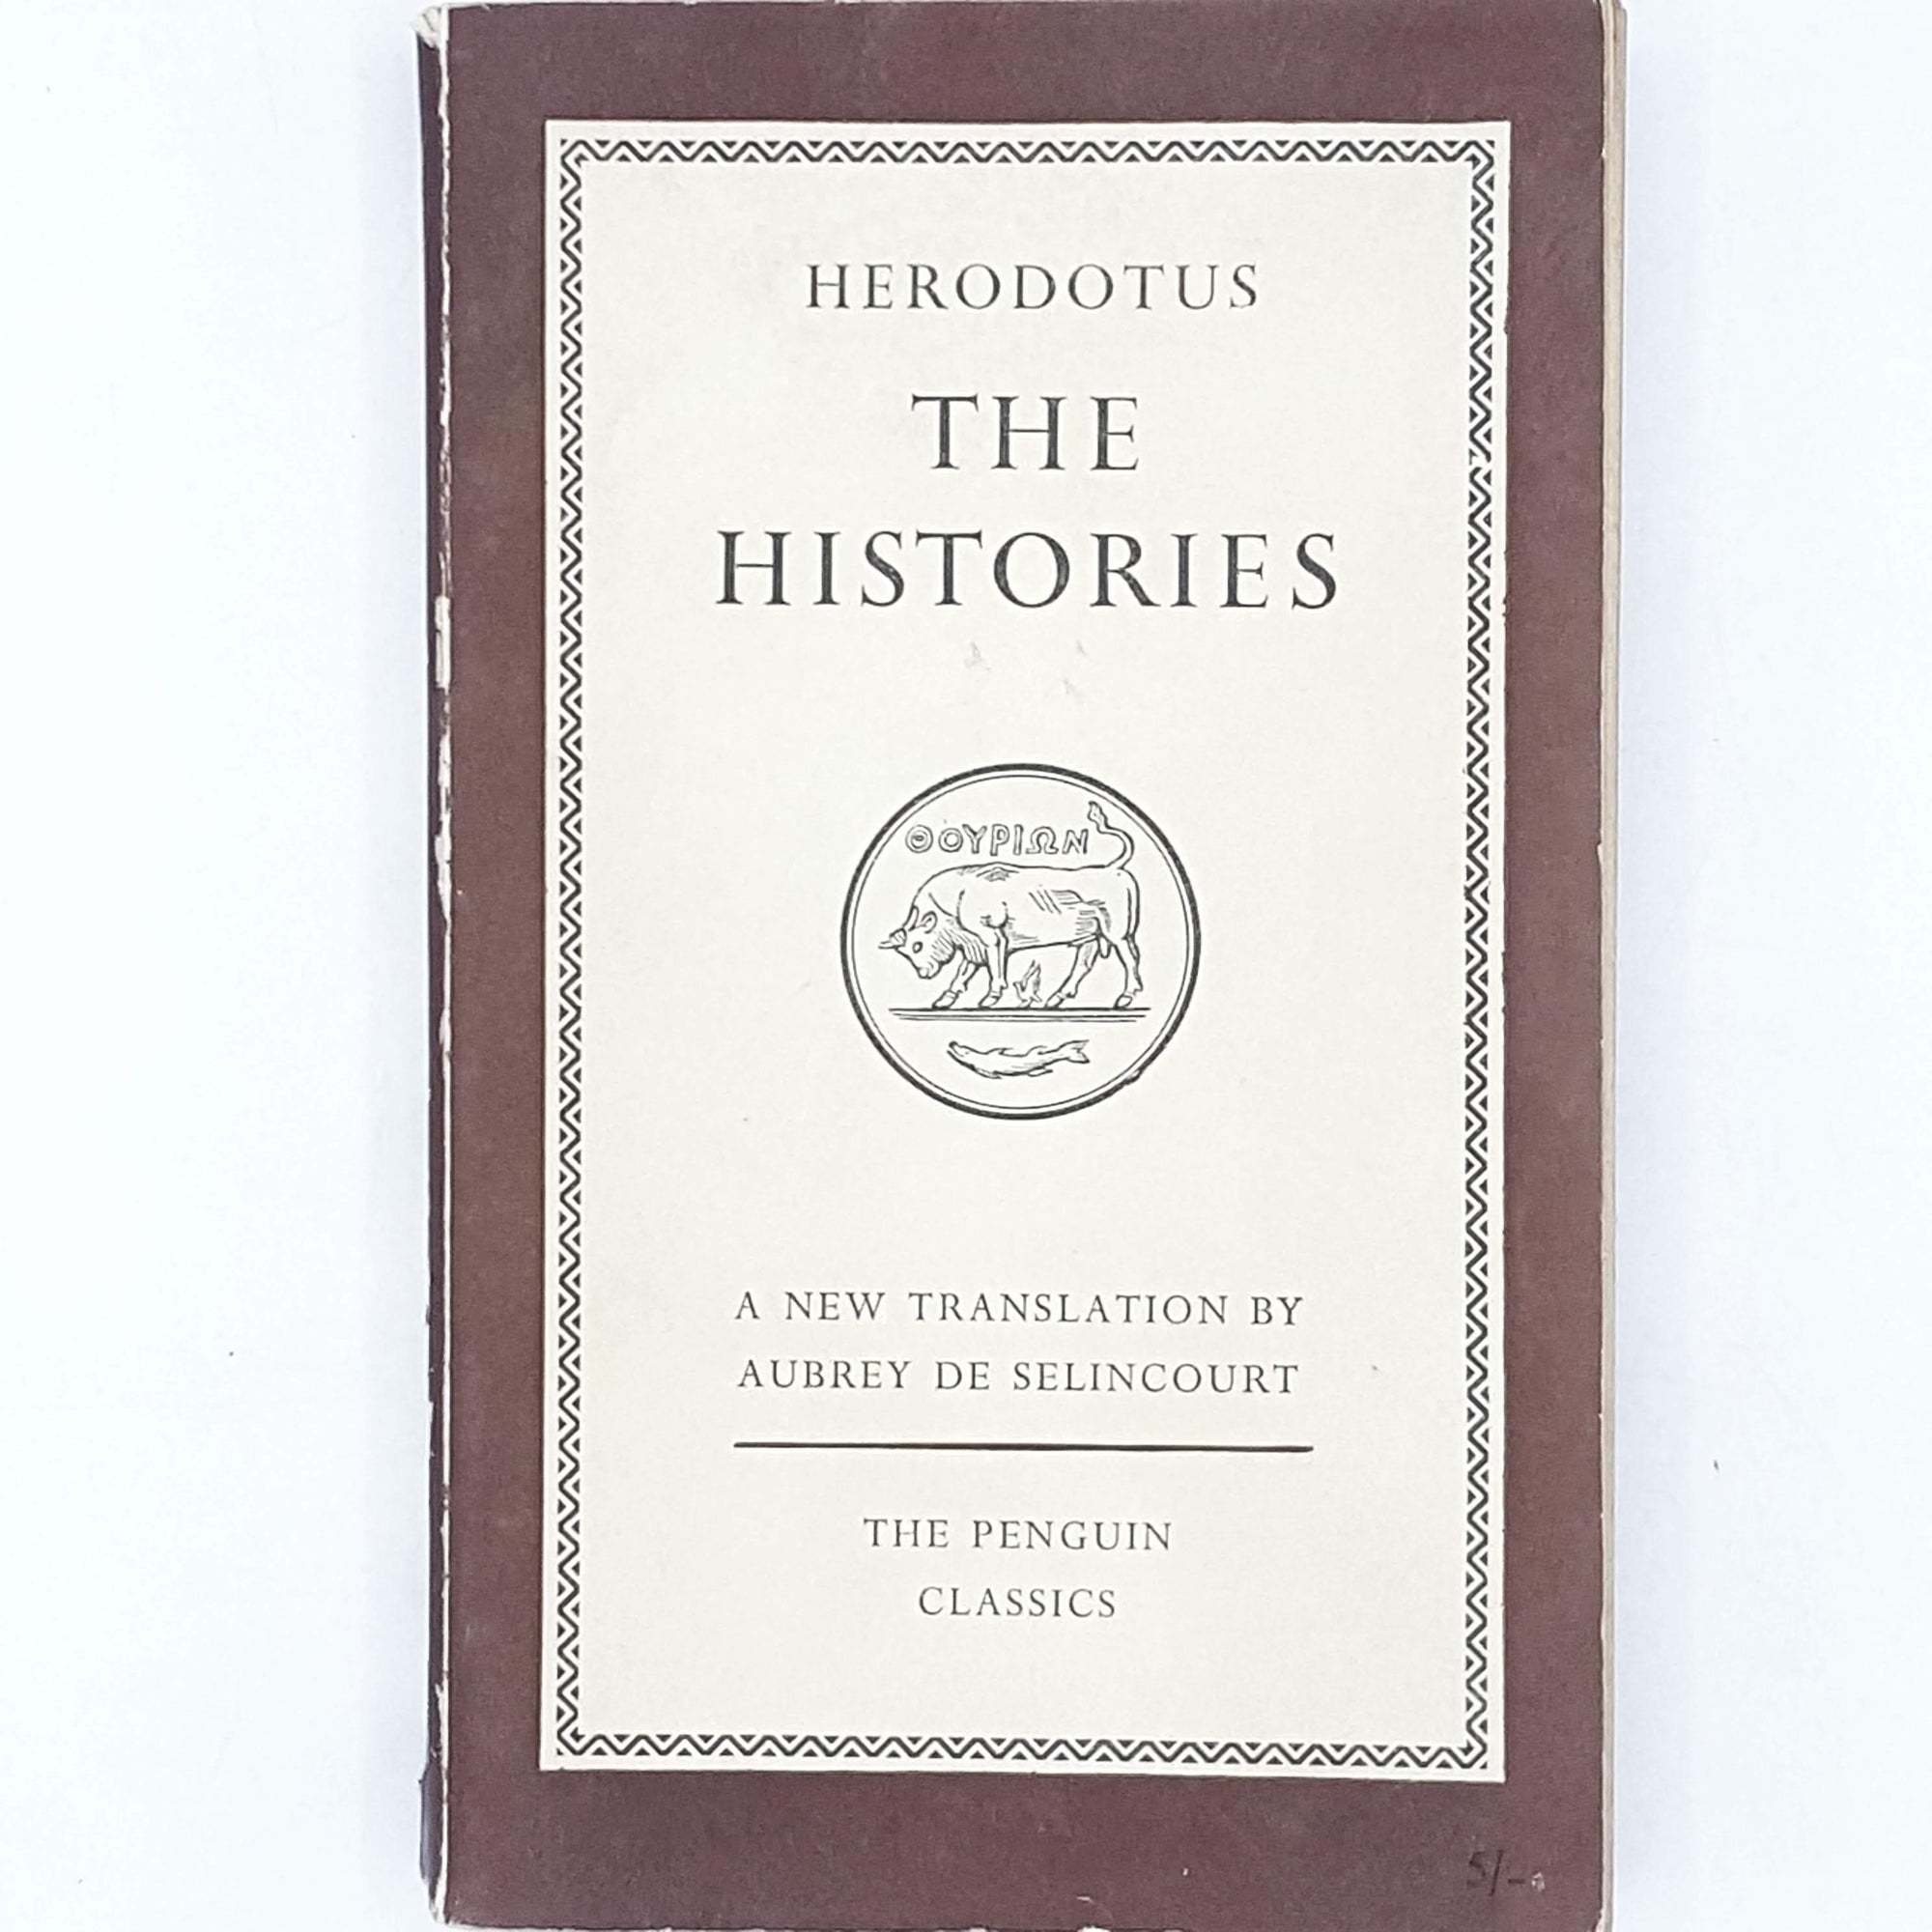 Herodotus's The Histories 1954 - 1959